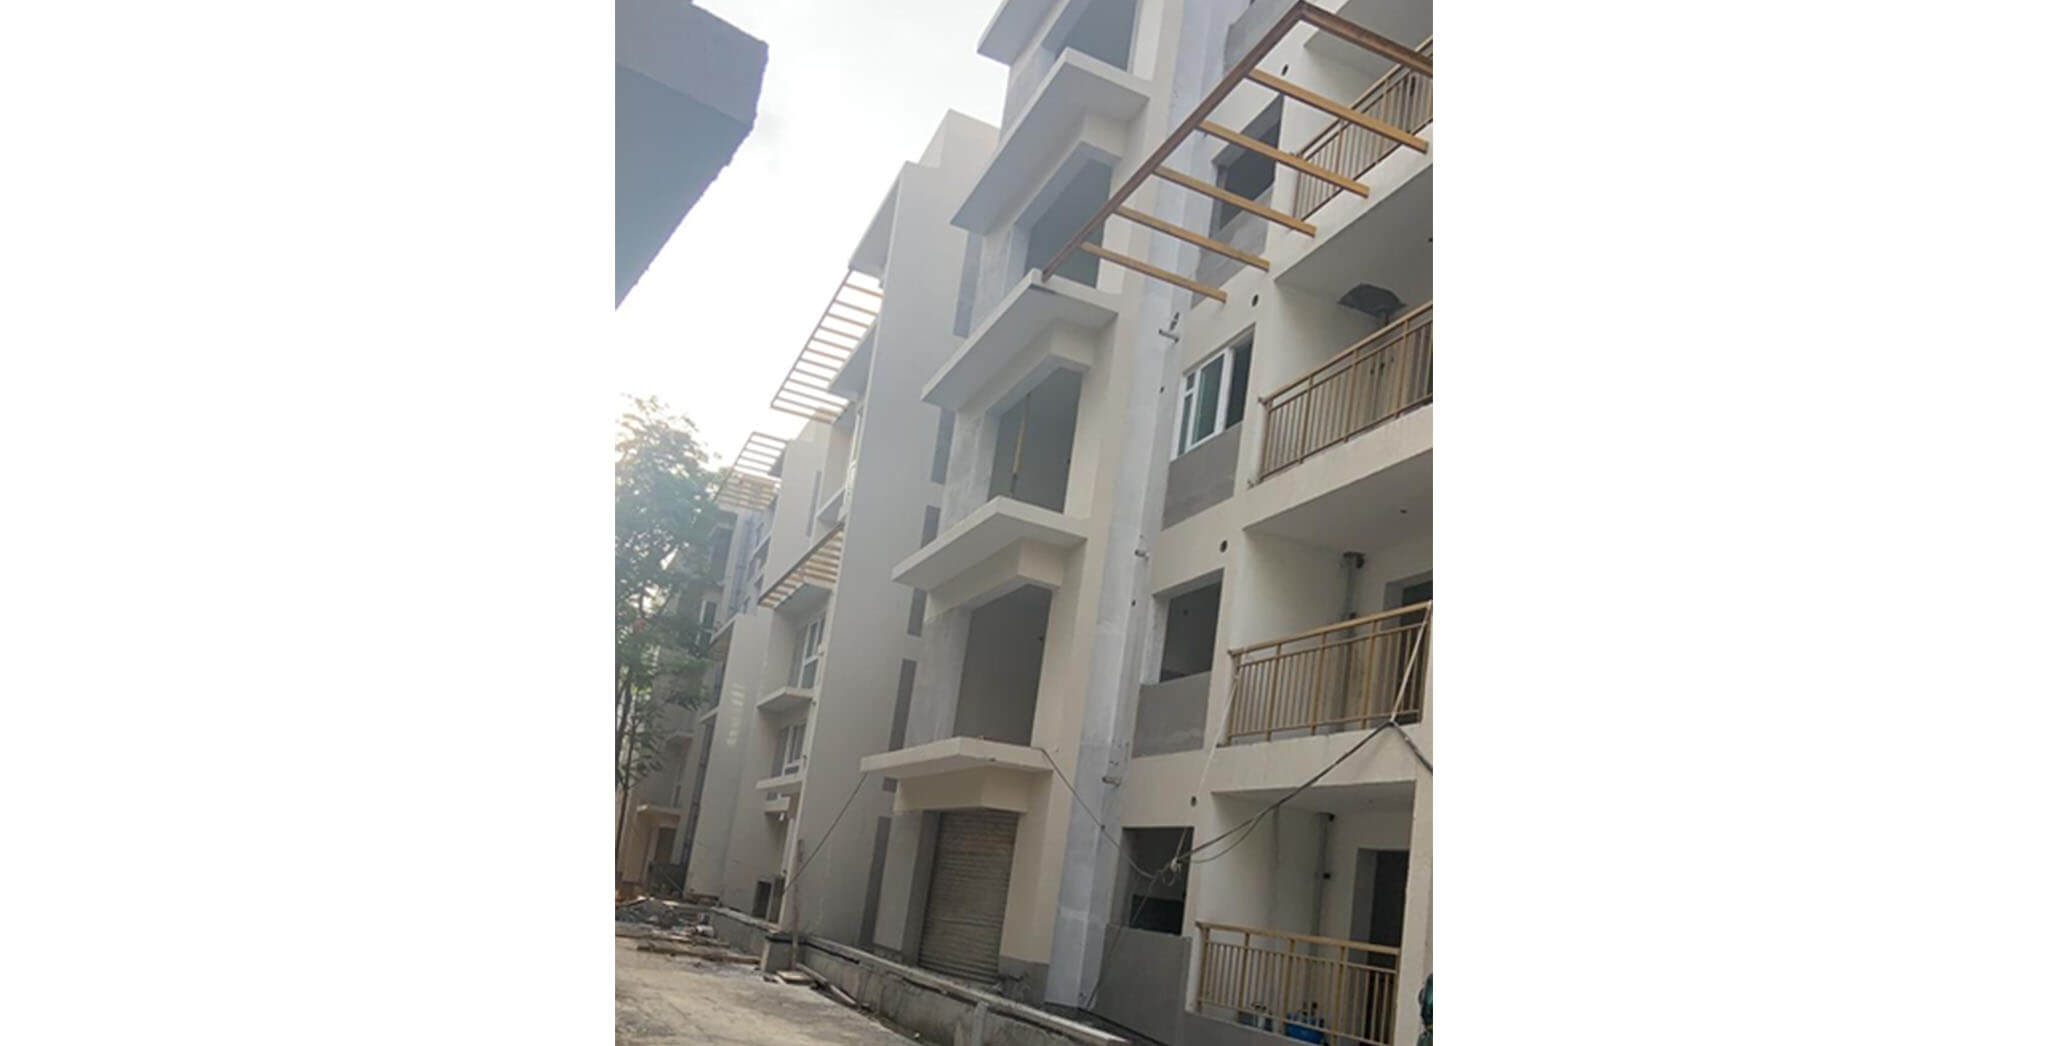 May 2021 - G Block: South elevation balcony railing painting works commenced; UPVC window installation work-in-progress.